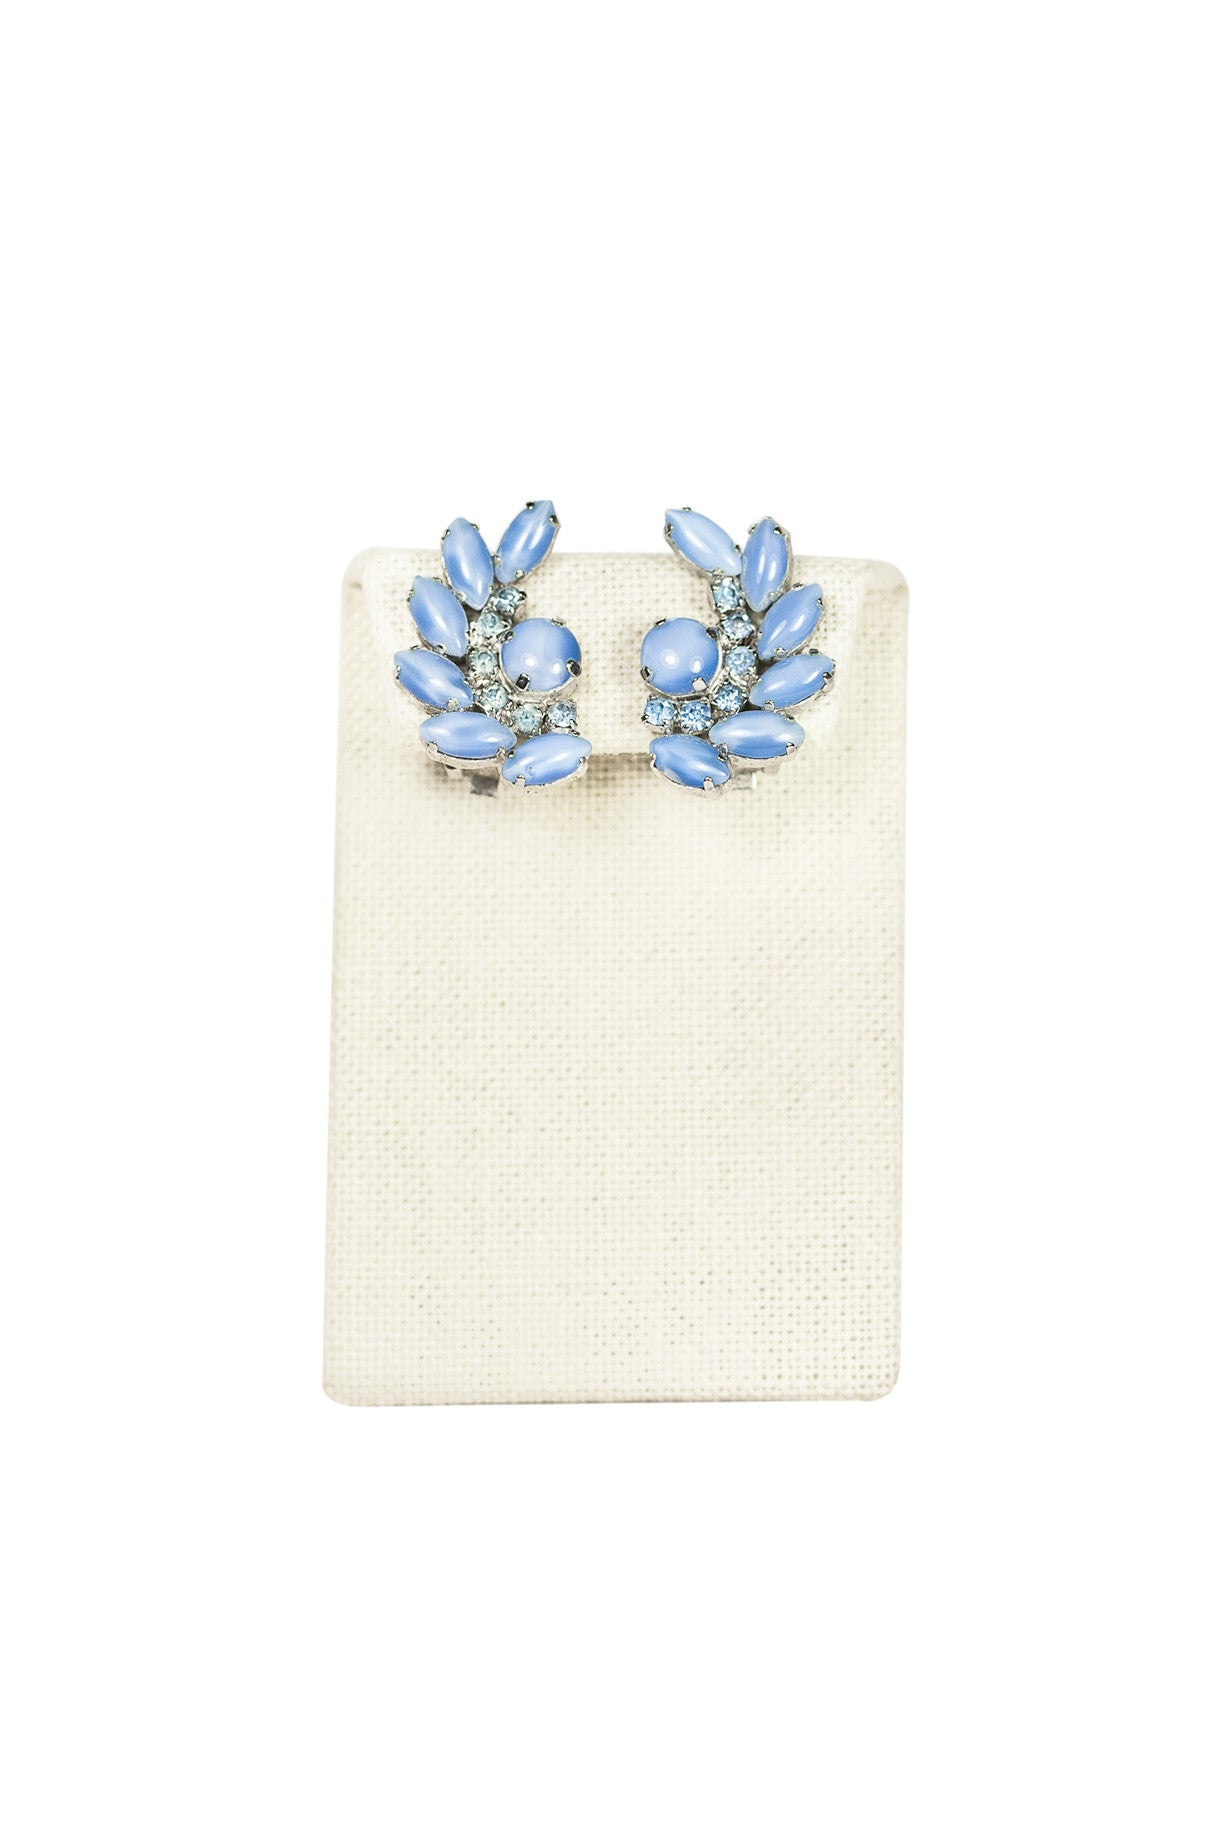 50's__Vintage__Light Blue Ear Climber Clips